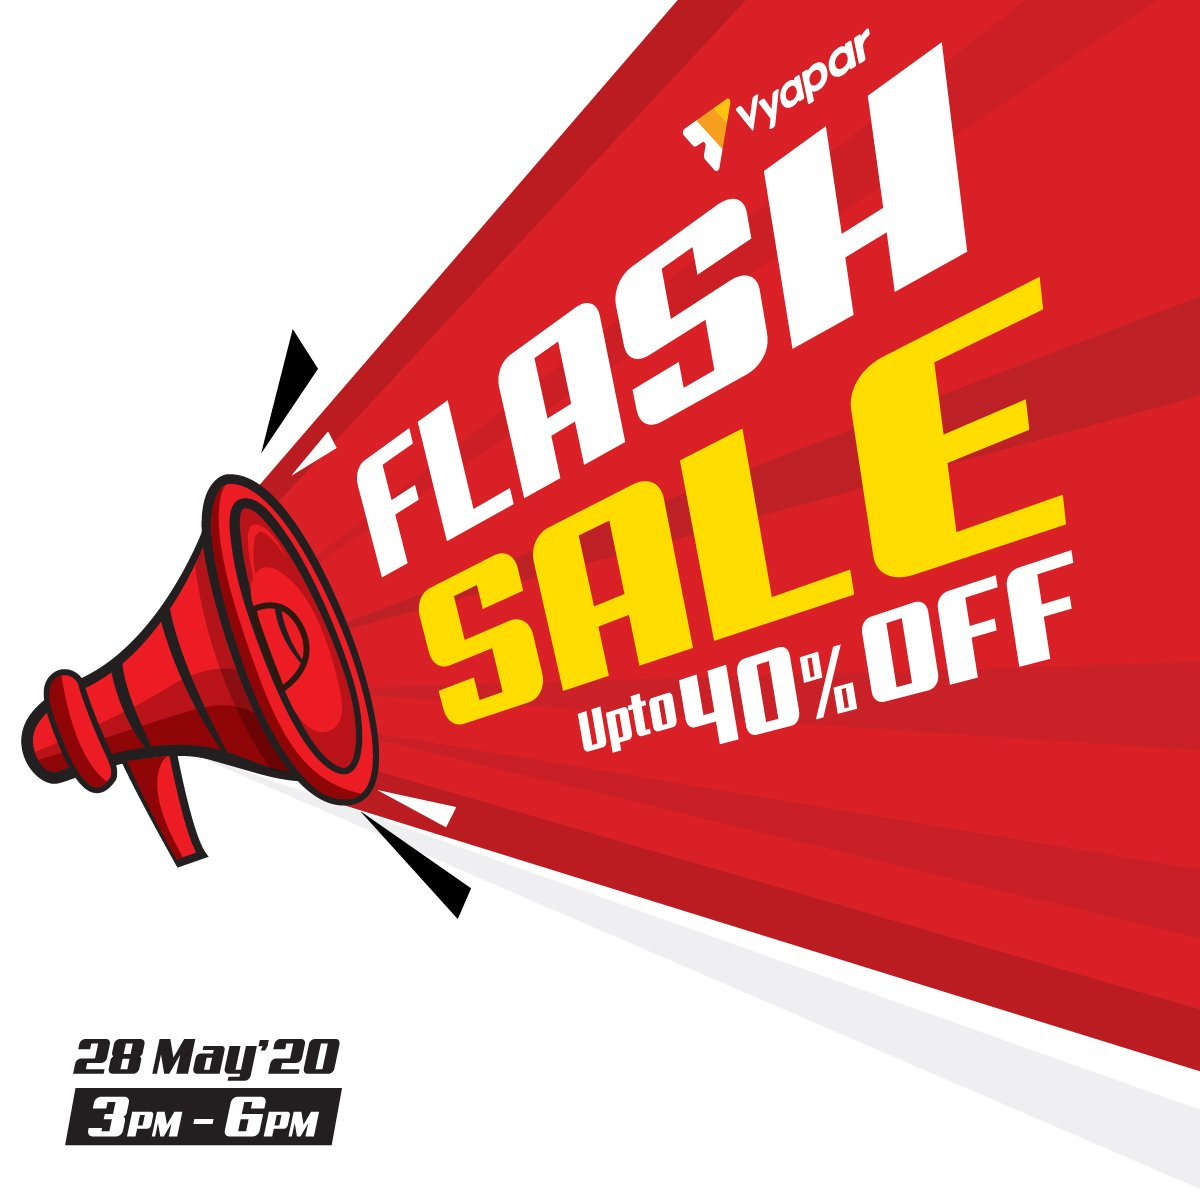 FLASH SALE  Get upto 40% off on all licenses valid only from today 3 PM-6 PM. Share this with 3 of your friends.   #offers #flashsale #sale #discount #sales #salesalesale #promo #promocode #buy #buylocal #onsale #supersale #deal #Contest #contestalert #giveawaypic.twitter.com/aRE5ren5lt